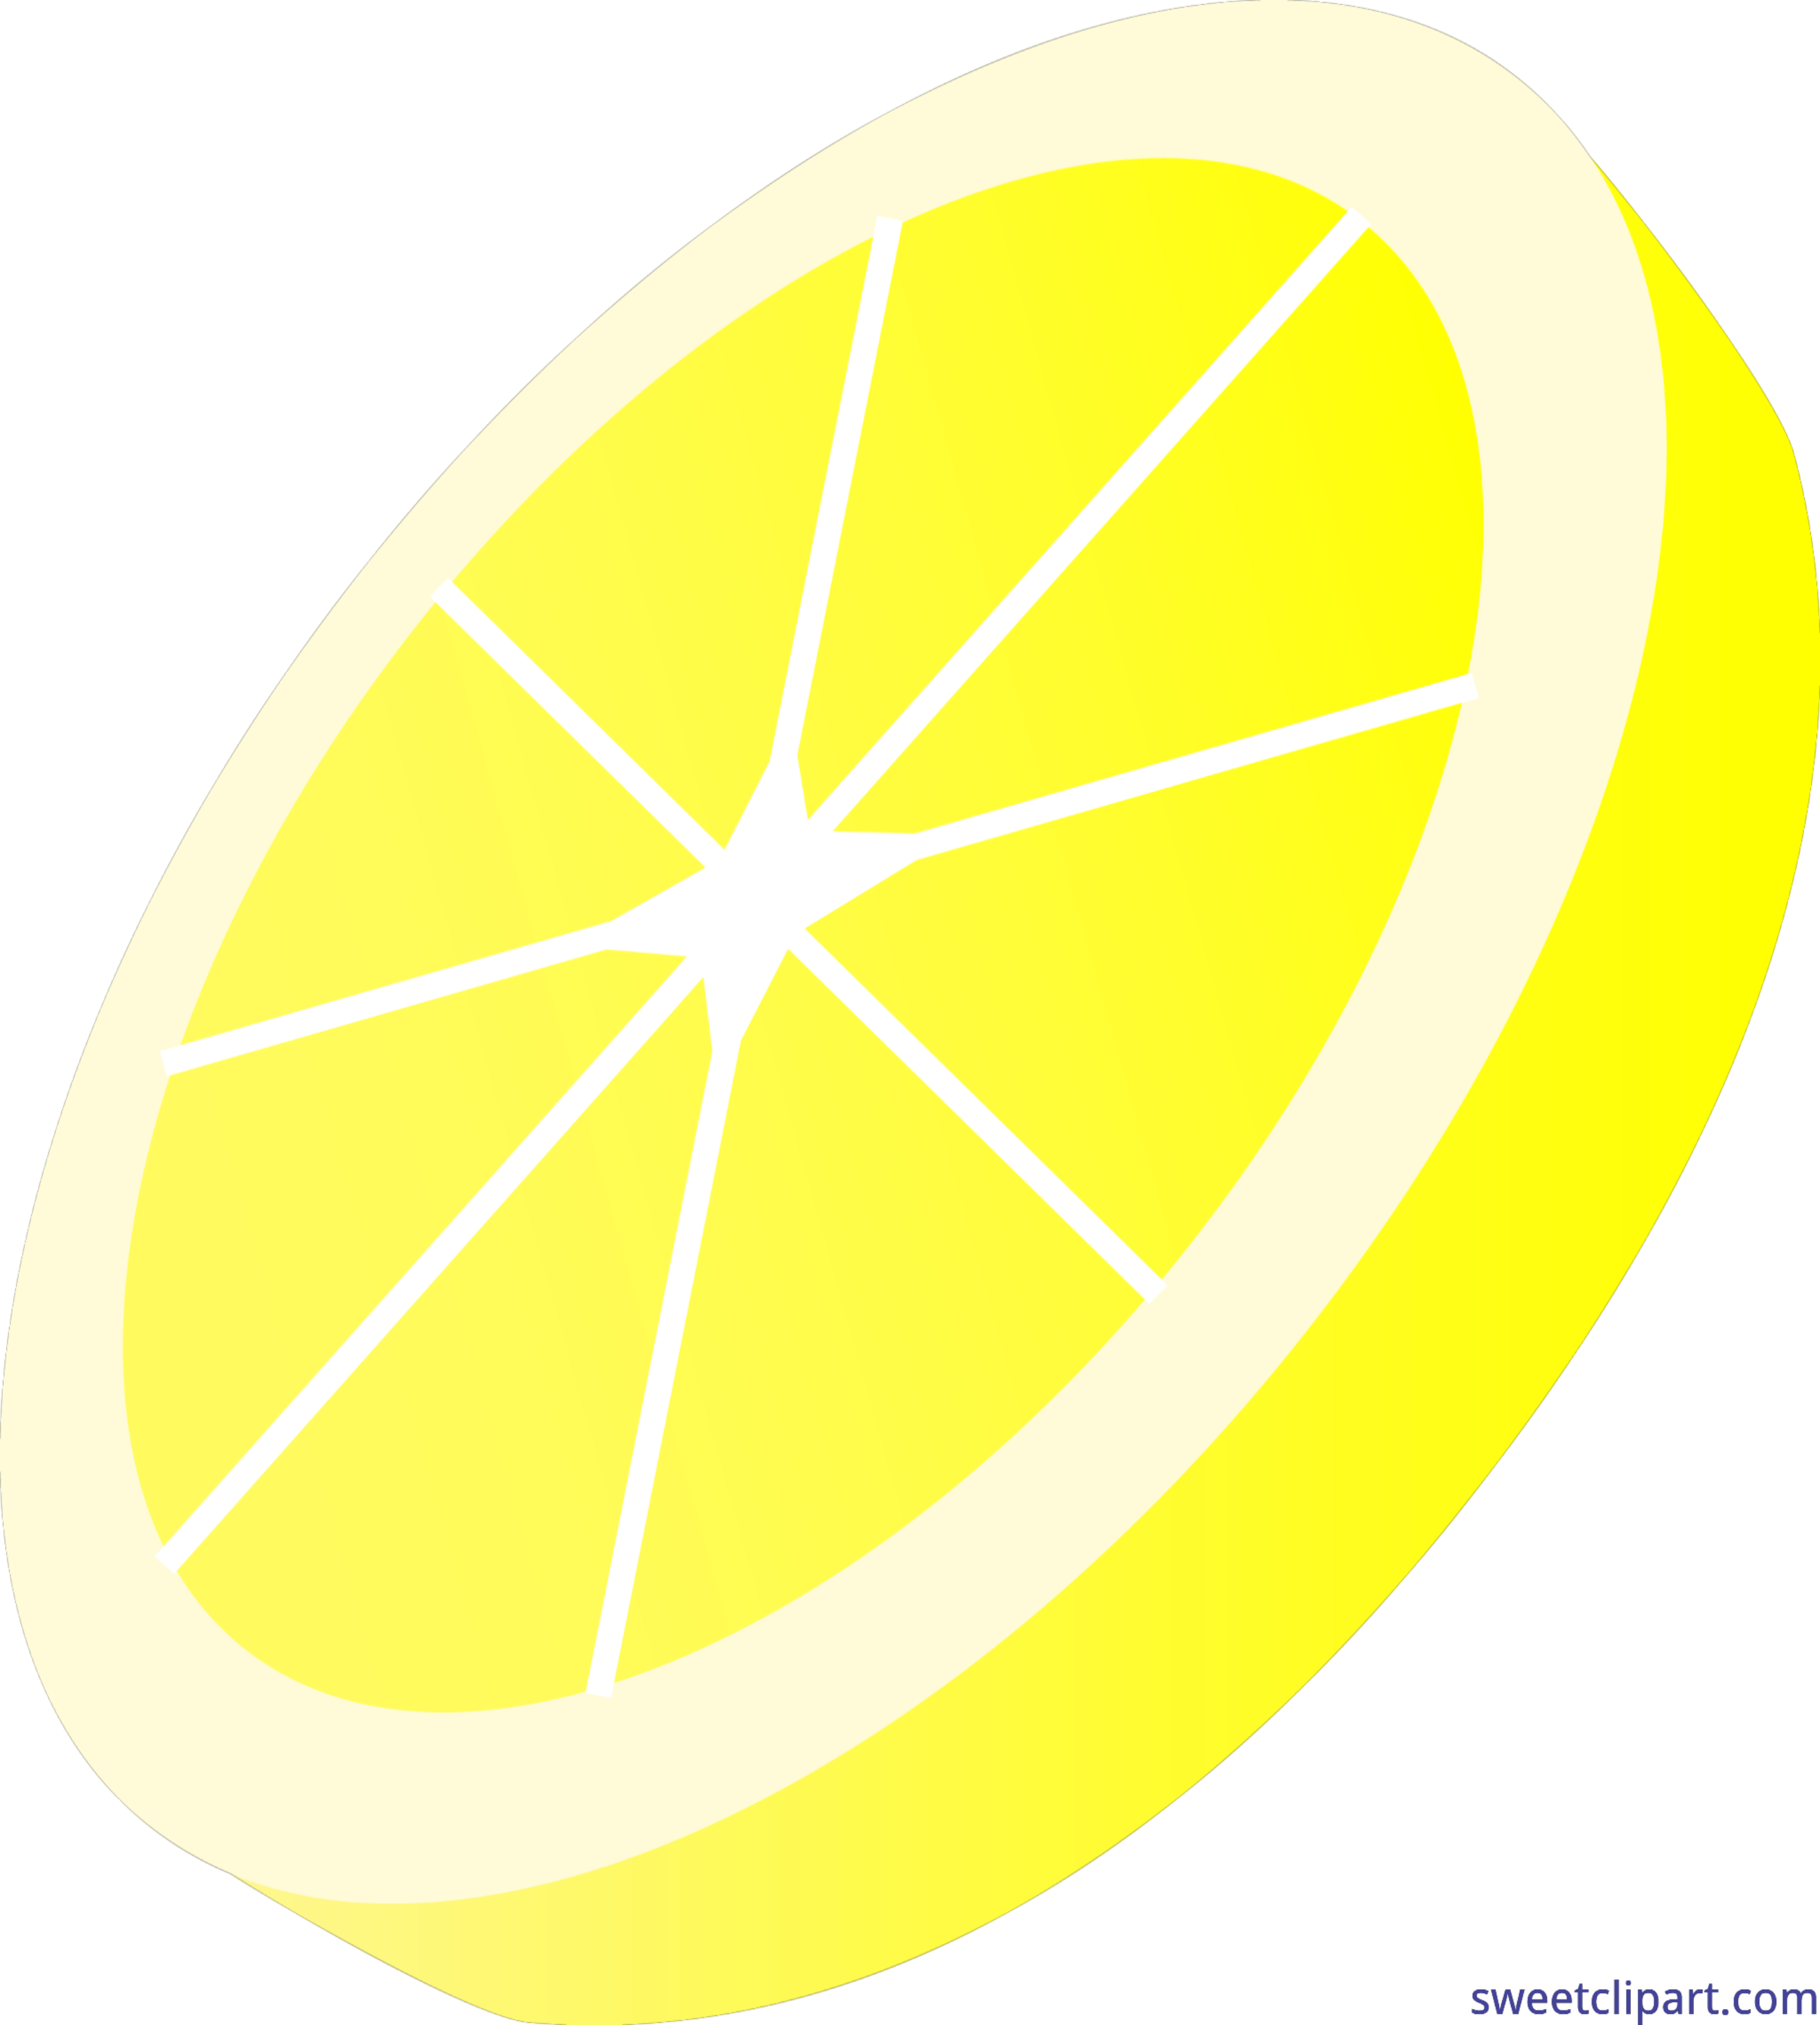 lemon slice clip art sweet clip art rh m sweetclipart com Lemon Outline Clip Art slice of lemon clipart